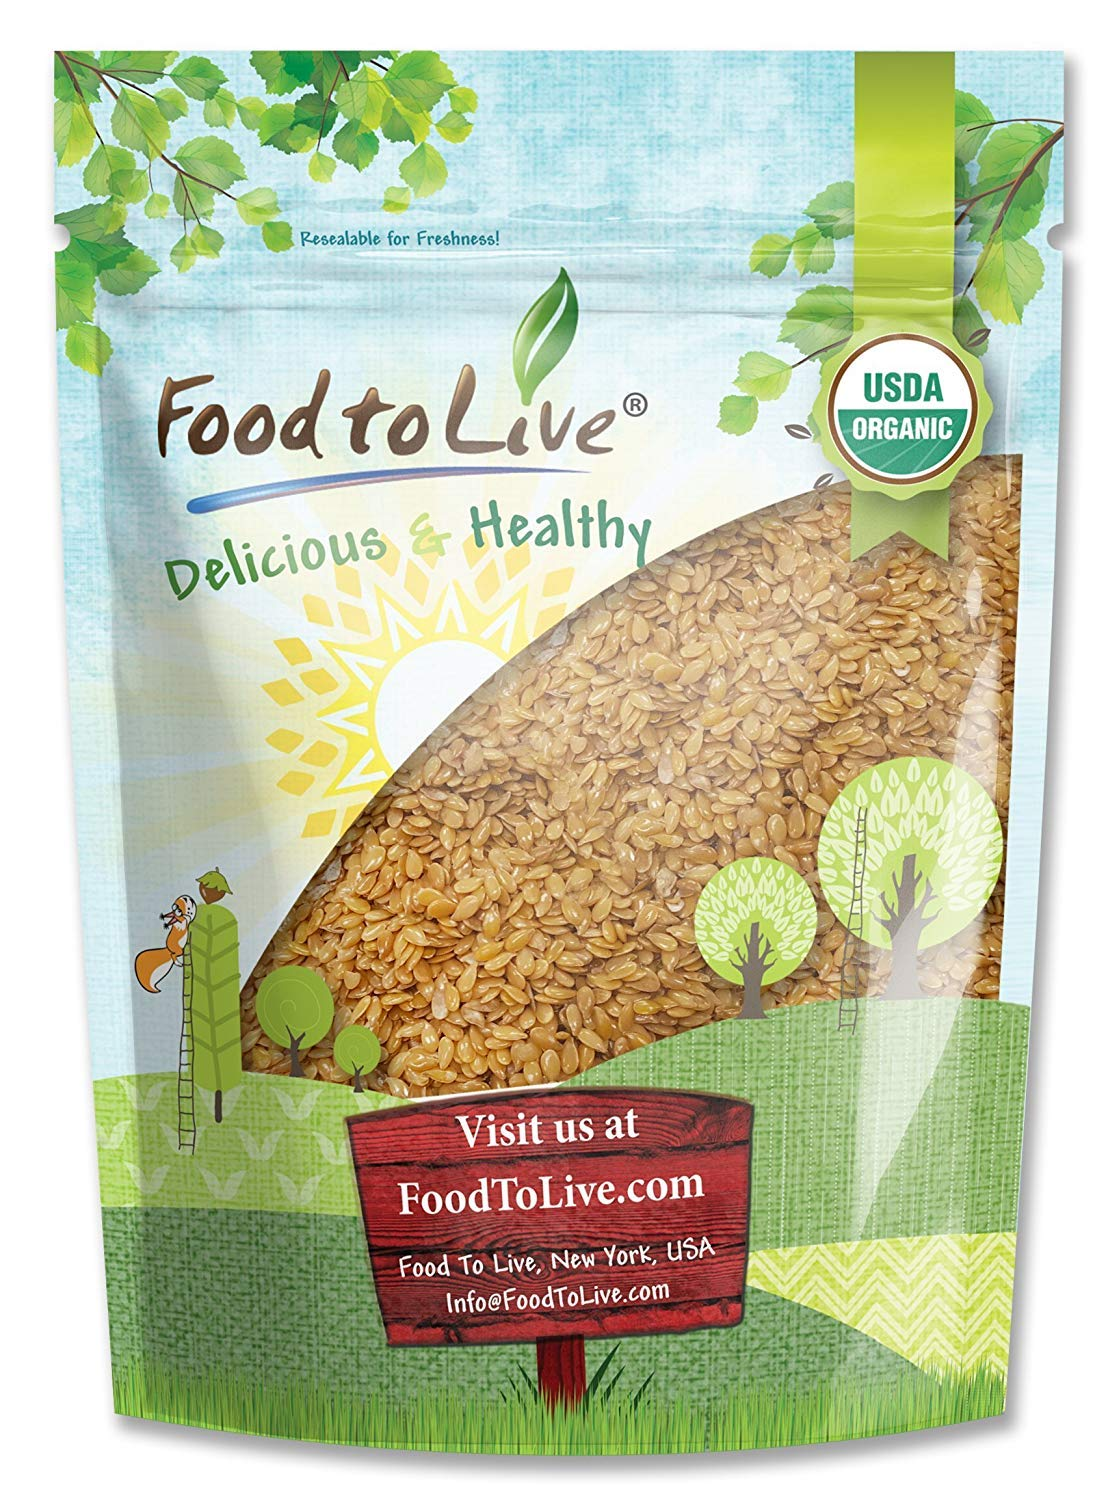 Organic Golden Flaxseed (Whole, Raw, Non-GMO, Kosher, Bulk) by Food to live — 2 Pounds